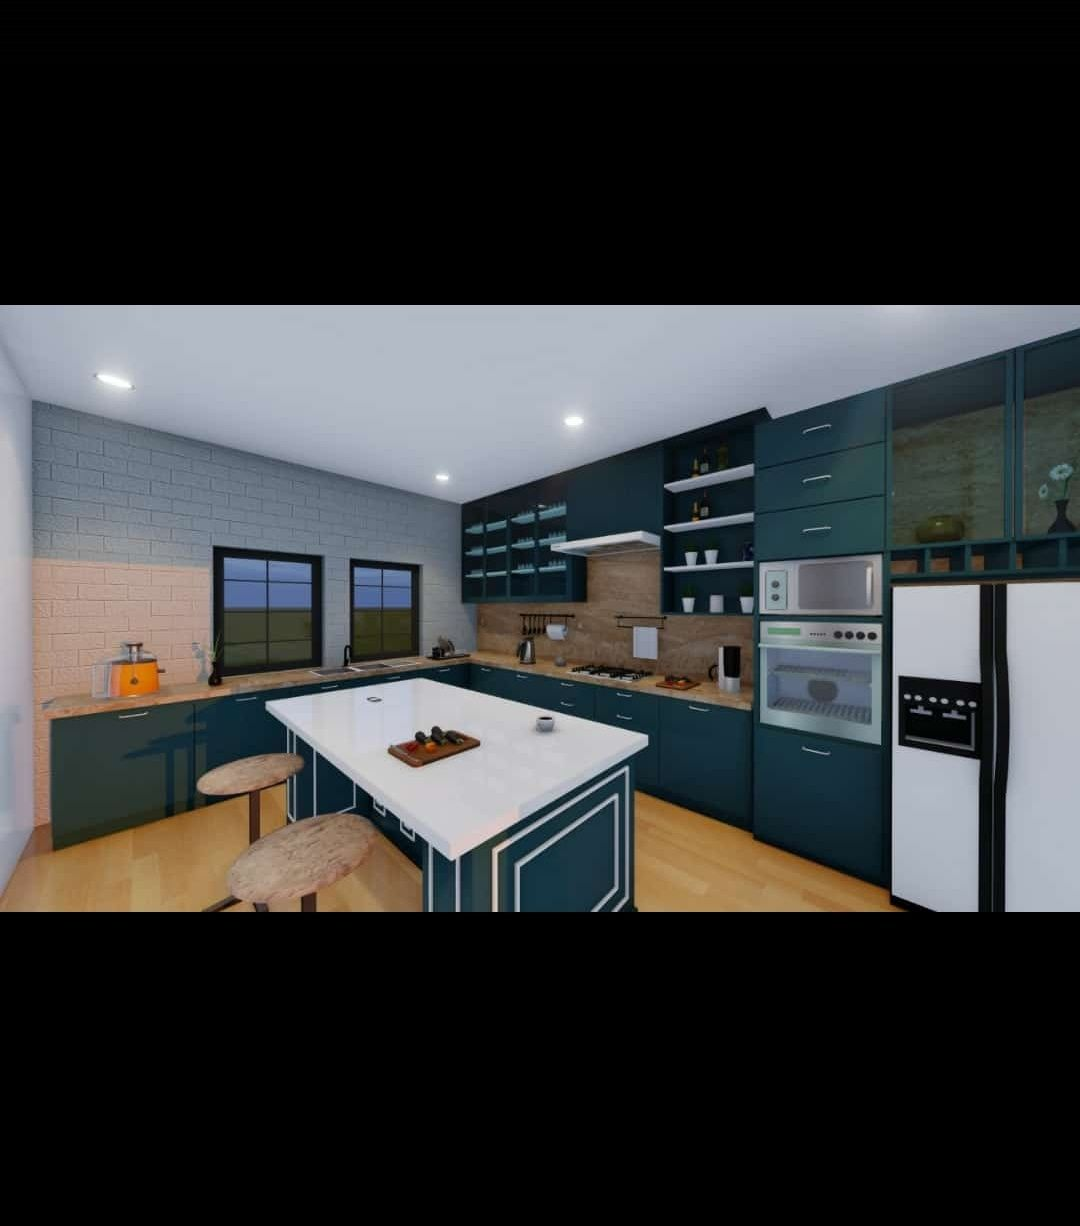 Kitchen-rendering-2-3500-3500